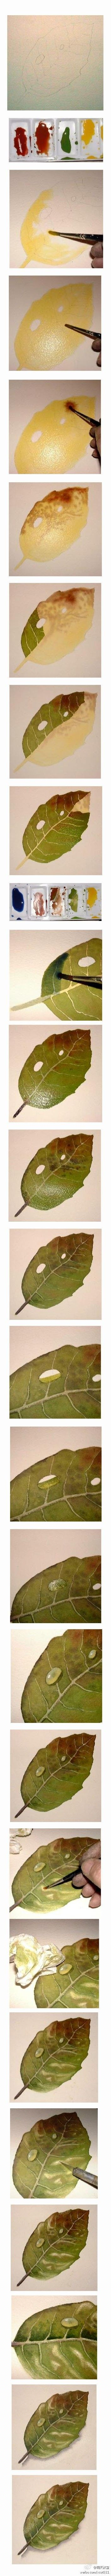 Watercolor step by step tutorial for painting a leaf.